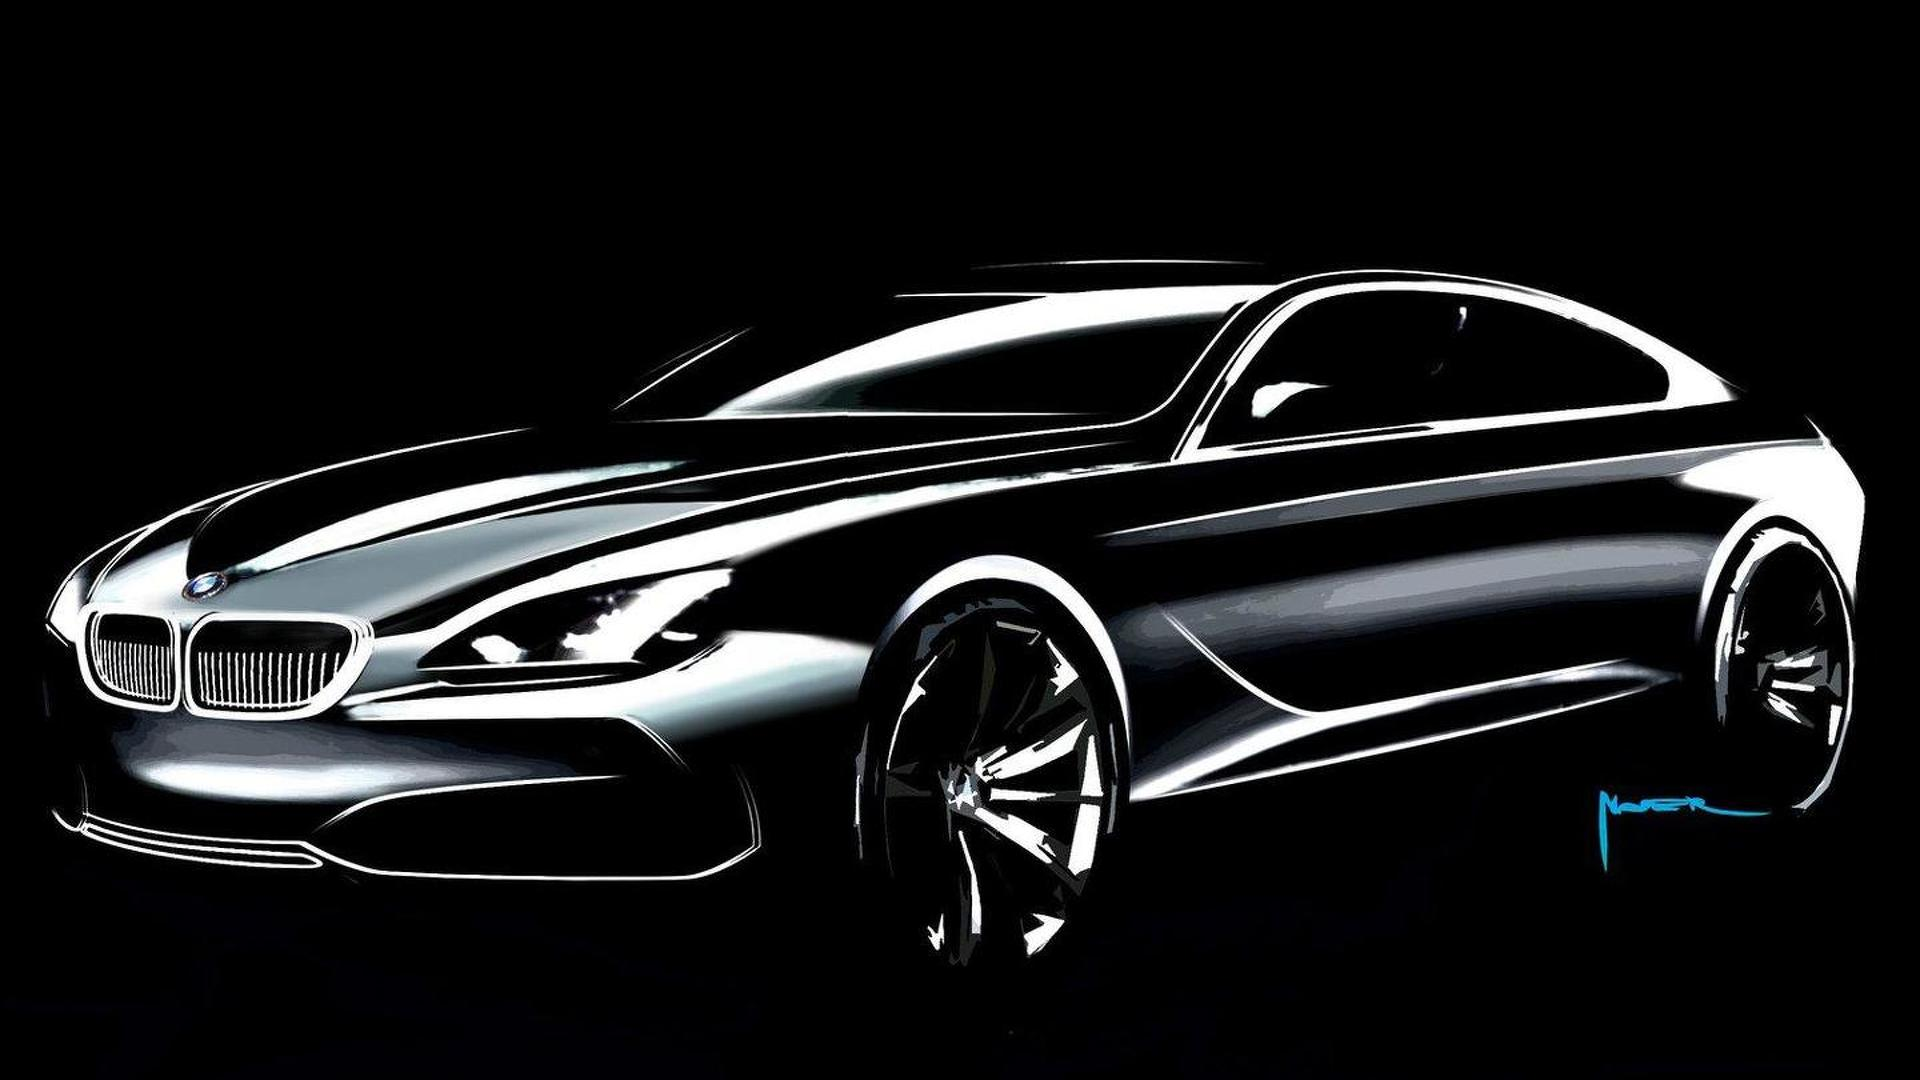 BMW developing an i5 or i7 for 2018, will target the Tesla Model S